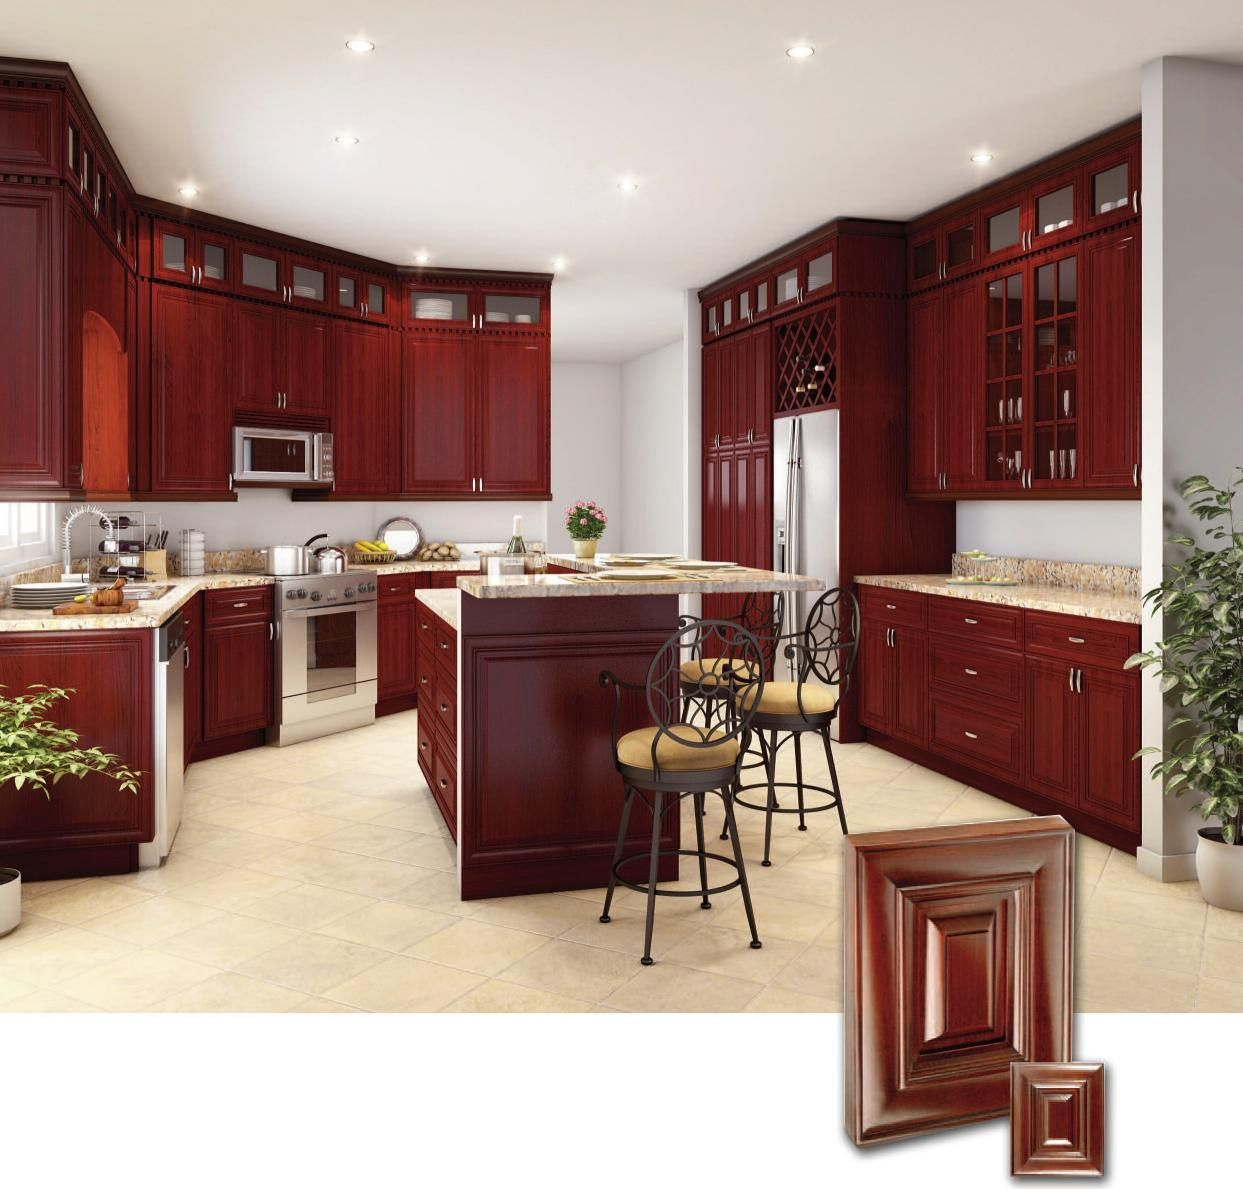 Kitchen designs cherry wood cabinets - Dark Cherry Wood Kitchen Cabinets Cherry Cabinets Wallpaper Kitchen Design Ideas Cherry